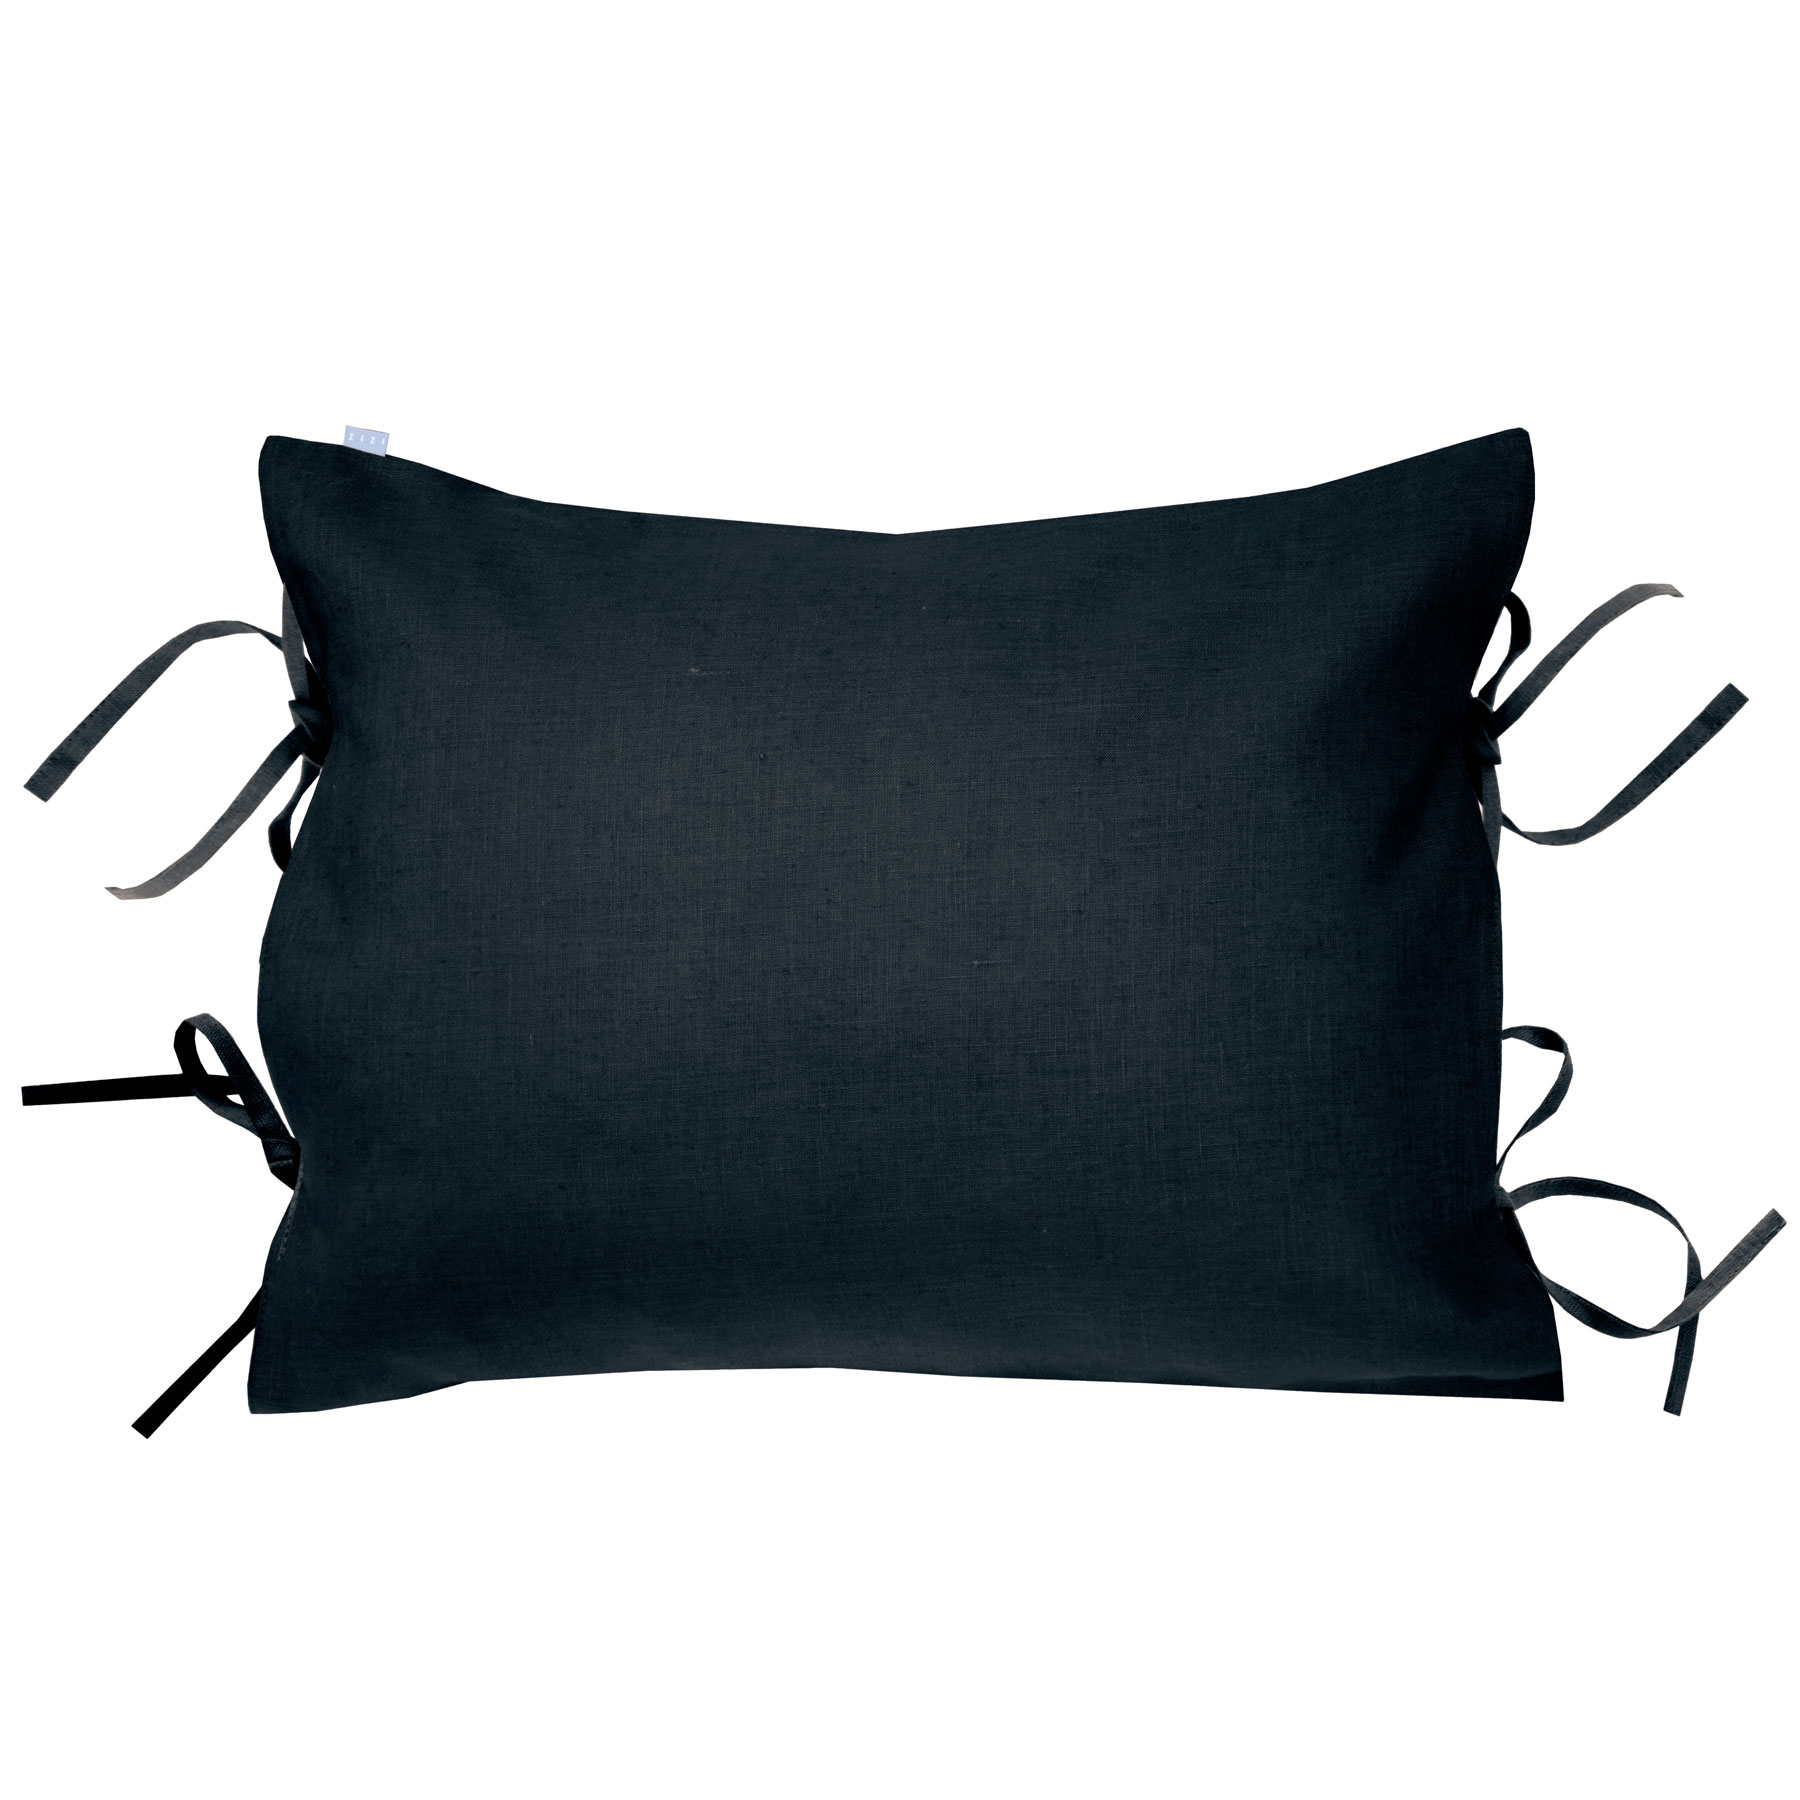 PILLOWCASE OSCAR <br />black